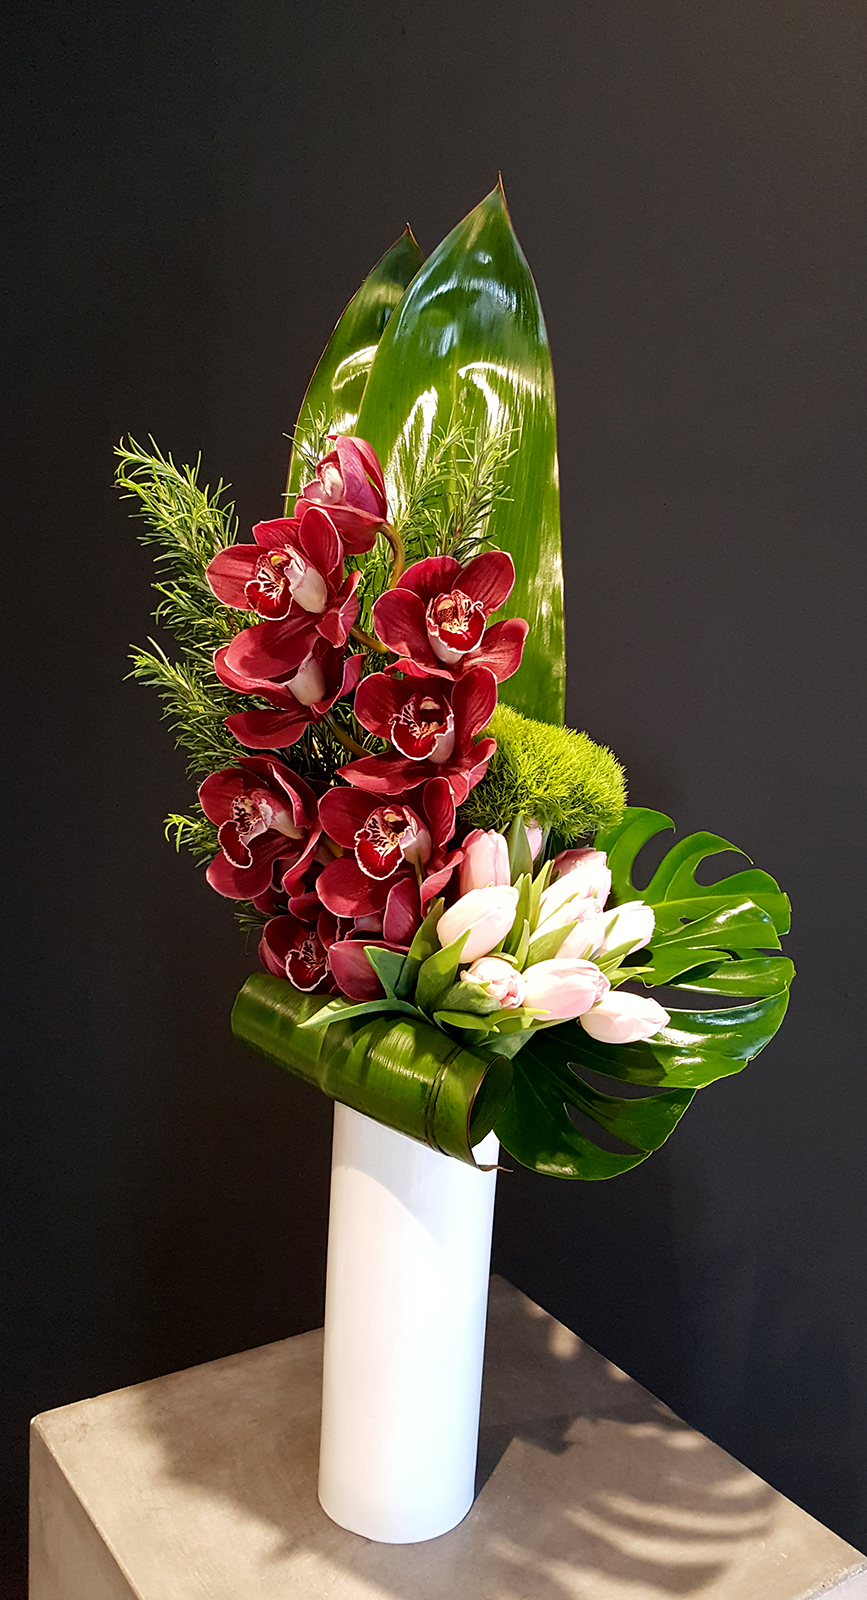 Red and white flowers with bold leaves for a decorative touch to corporate spaces